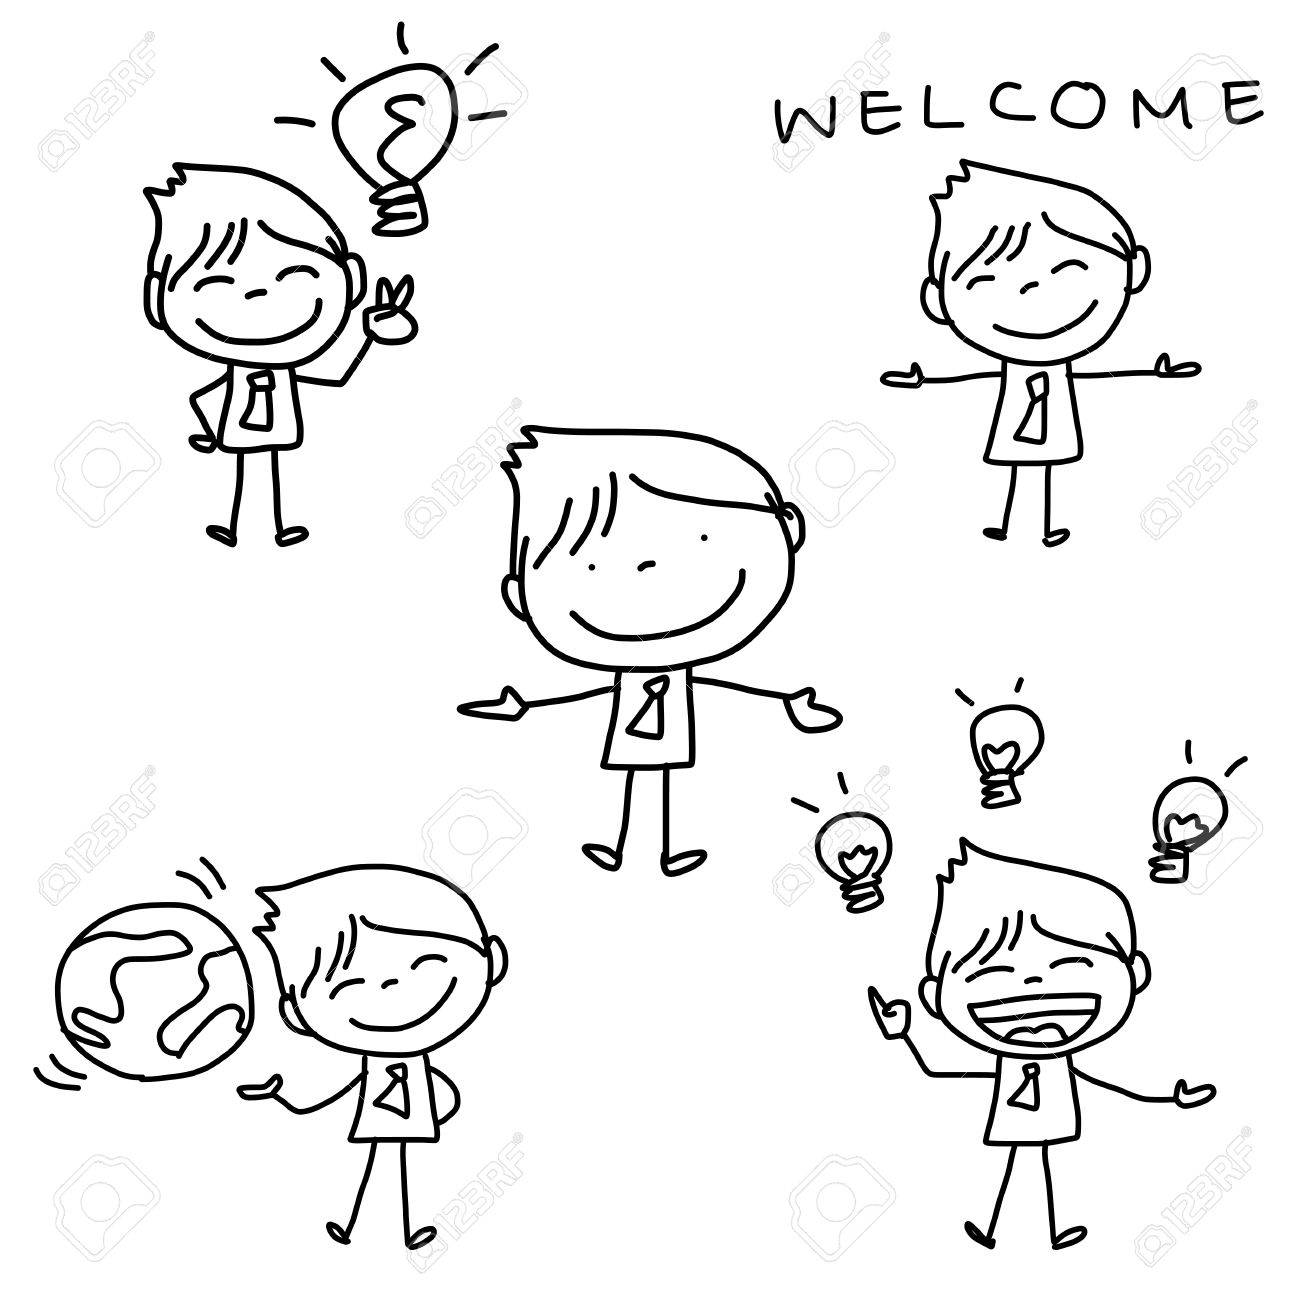 hand drawing cartoon character happy business person - 22797855